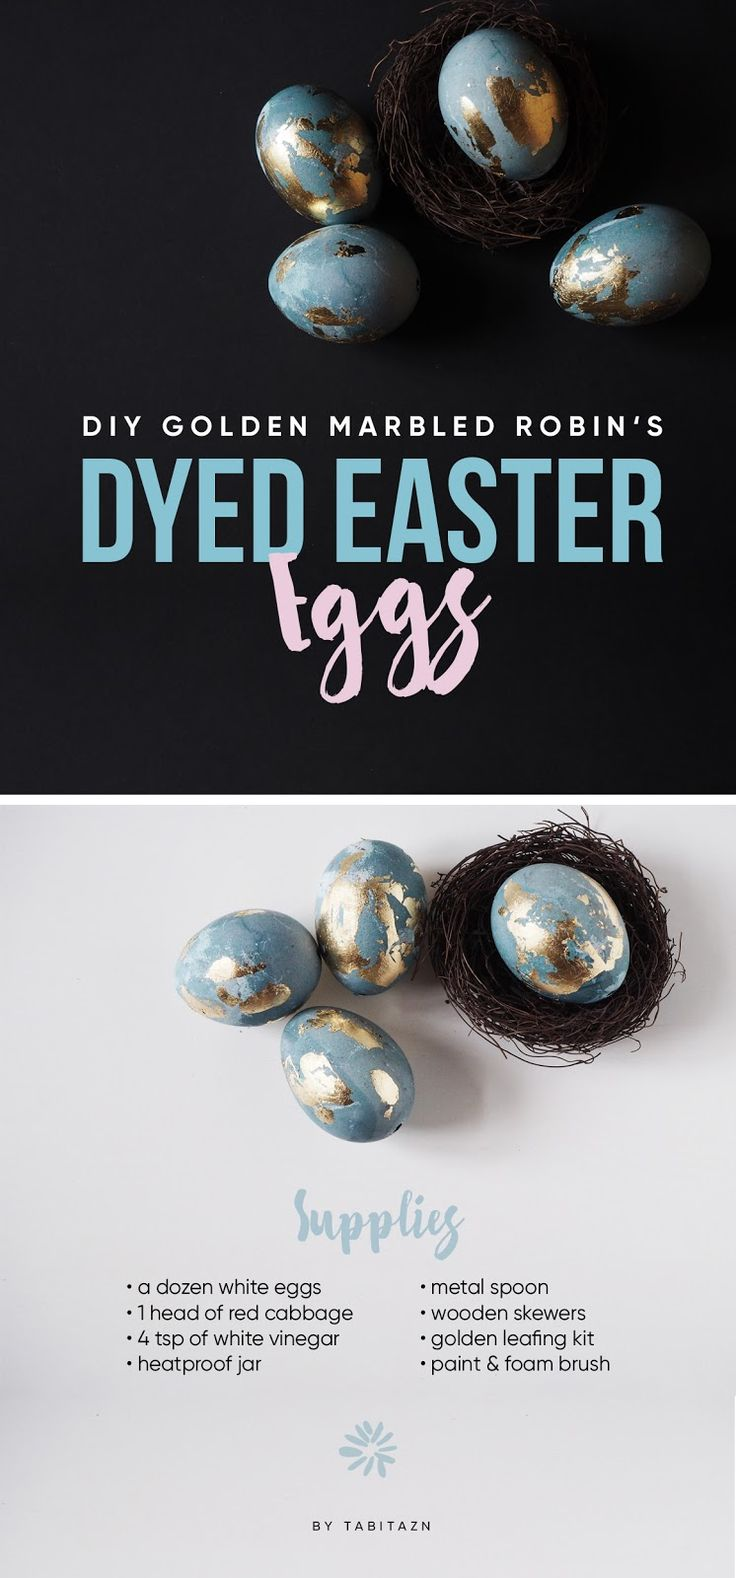 DIY trendy golden marbled robin's dyed Easter eggs